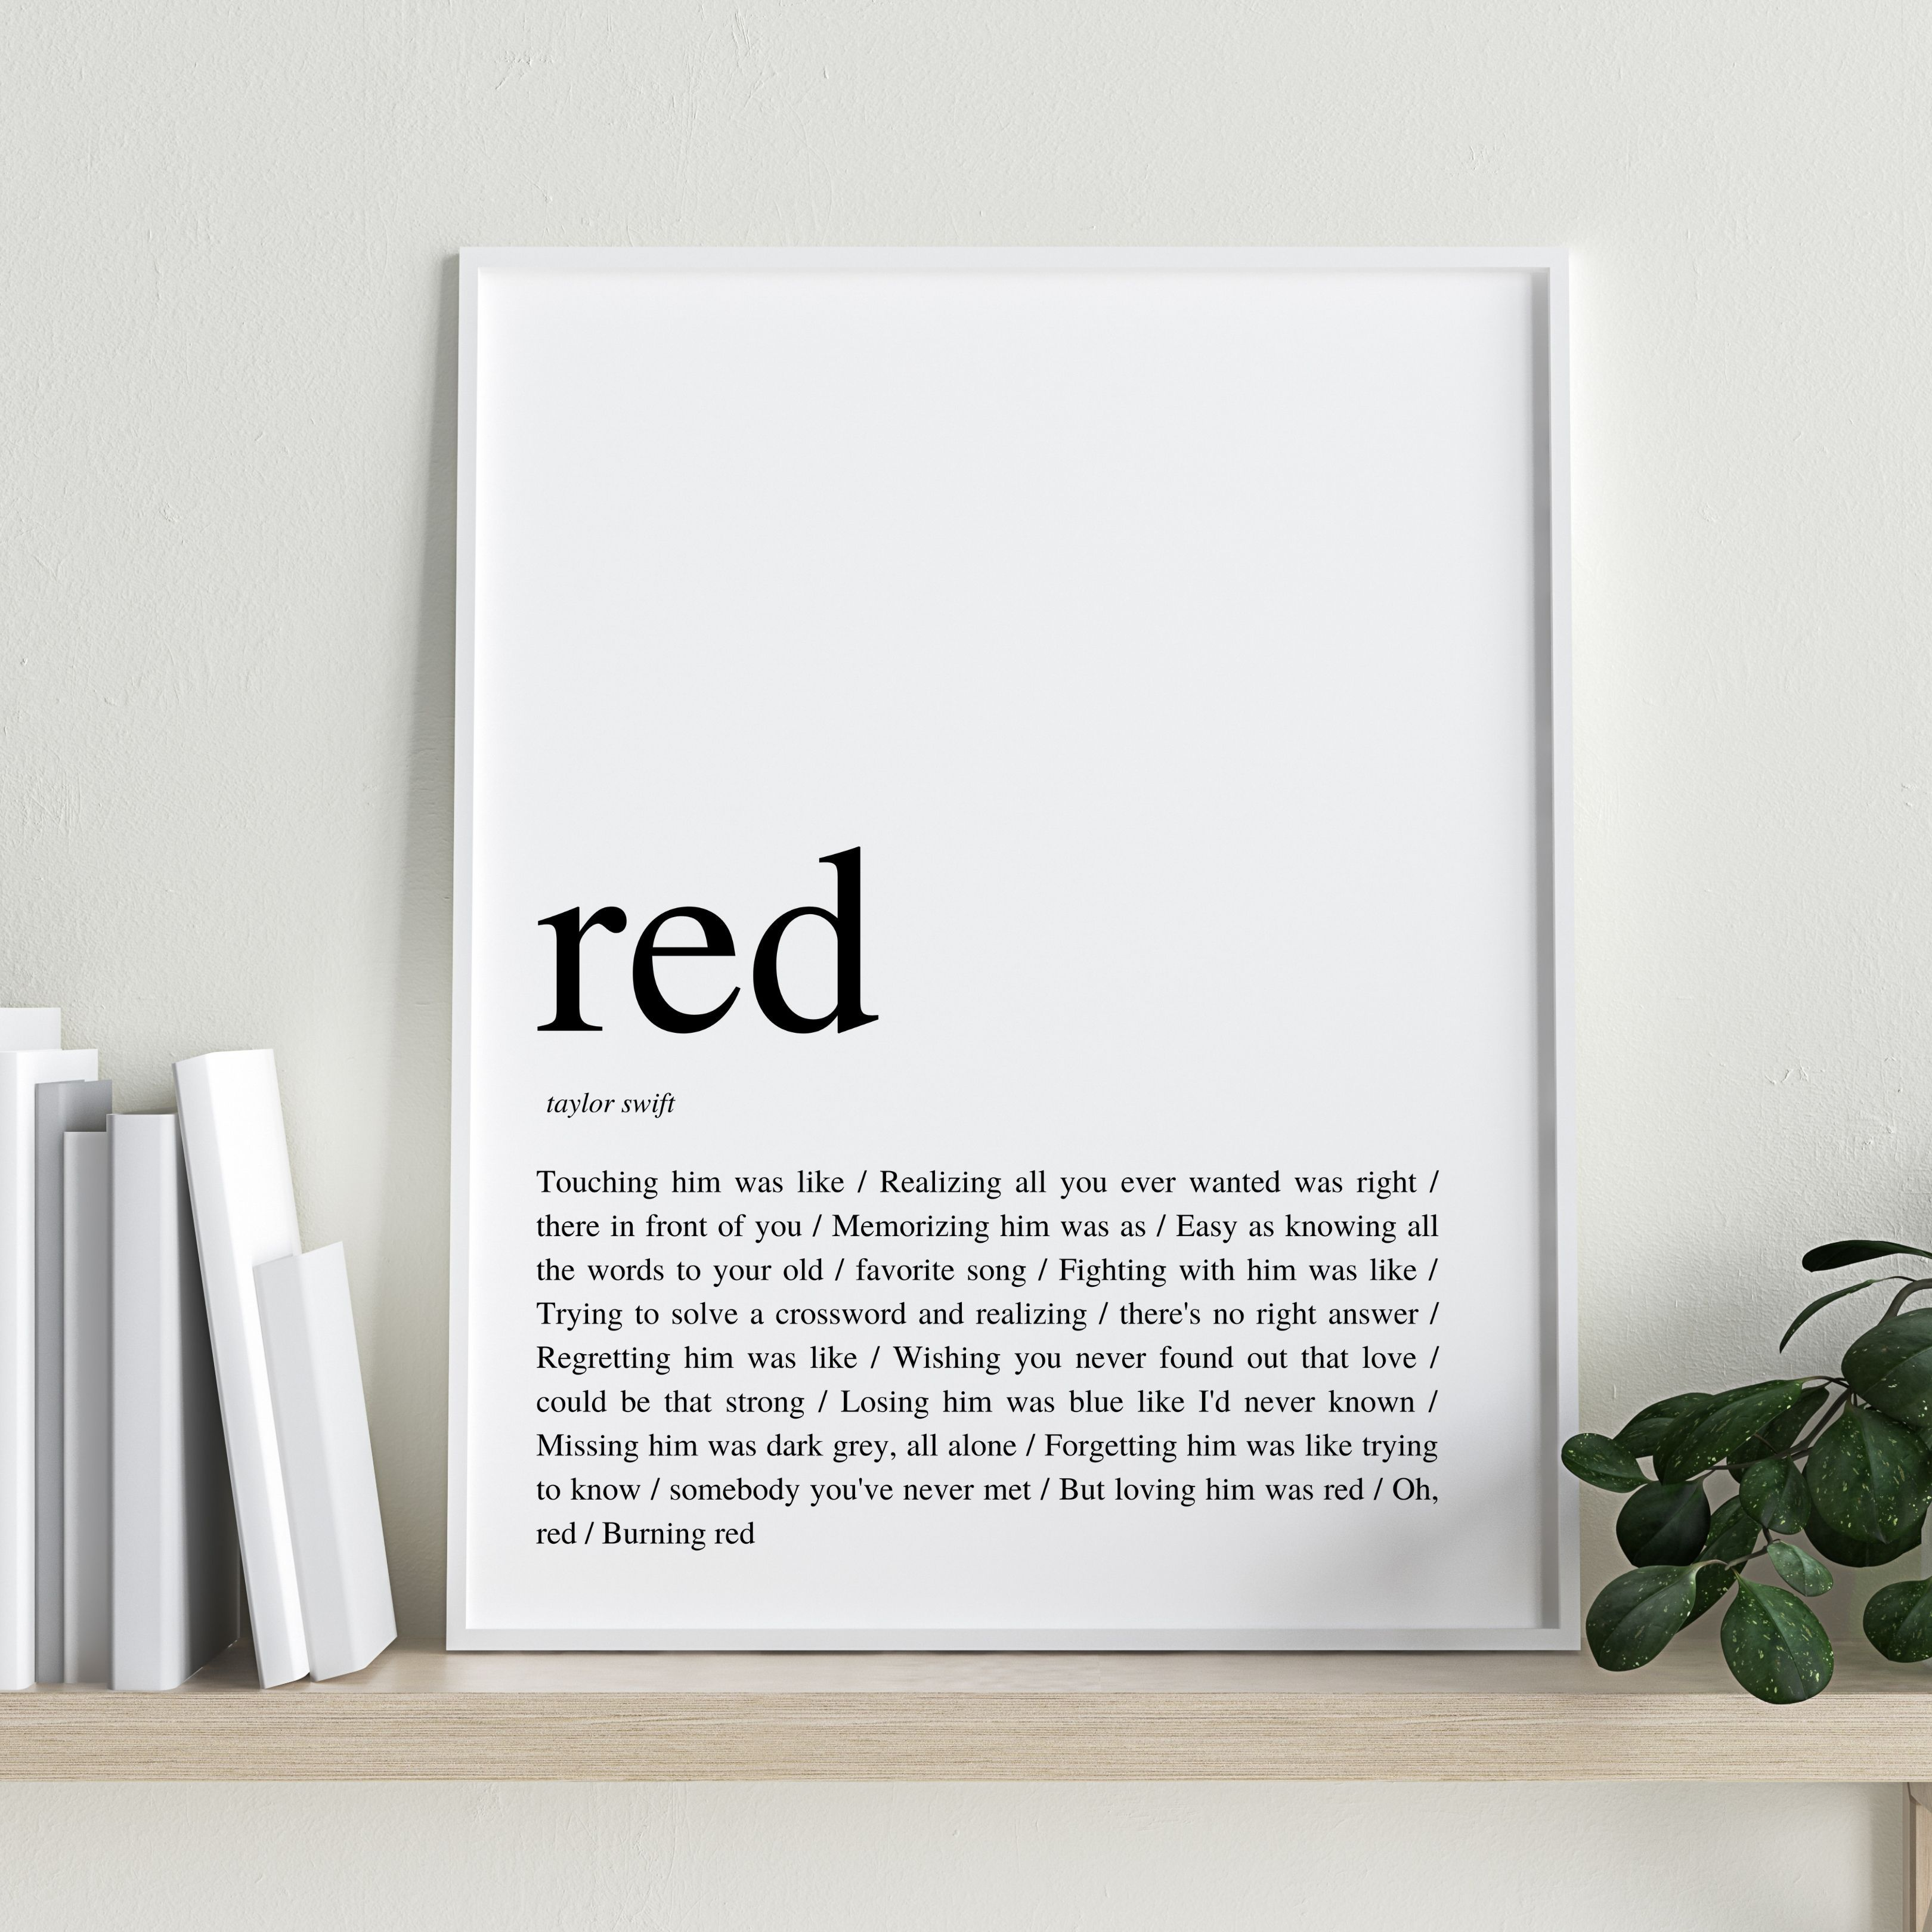 Taylor Swift Red Lyrics Poster Lyrics Wall Art Etsy In 2021 Lyric Poster Taylor Swift Lyrics Taylor Swift Red Lyrics